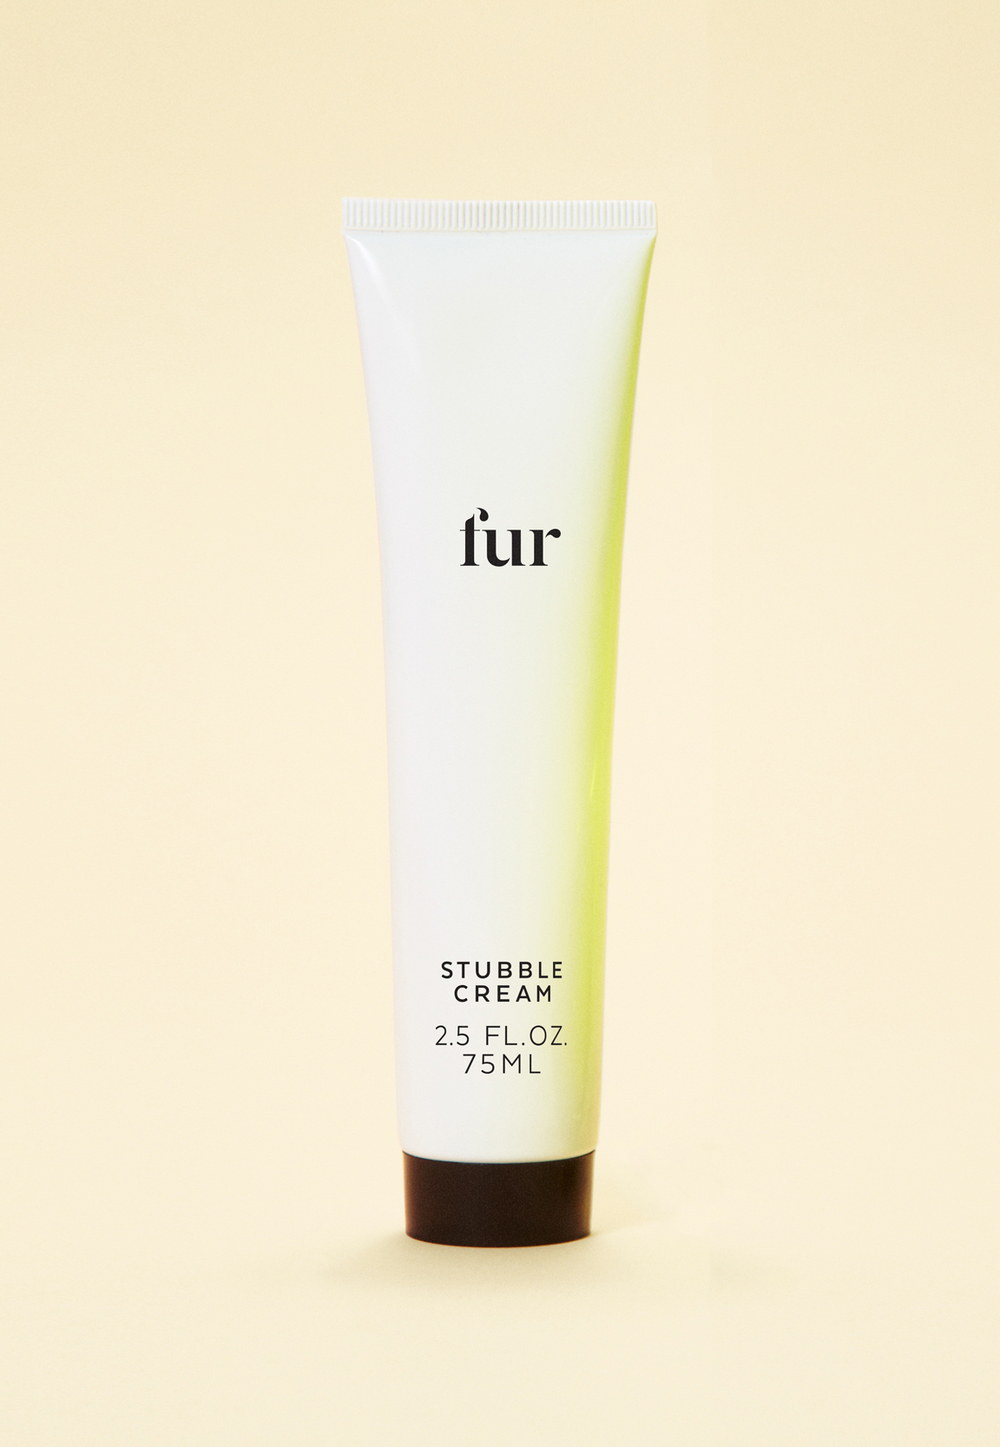 Stubble Cream from Fur